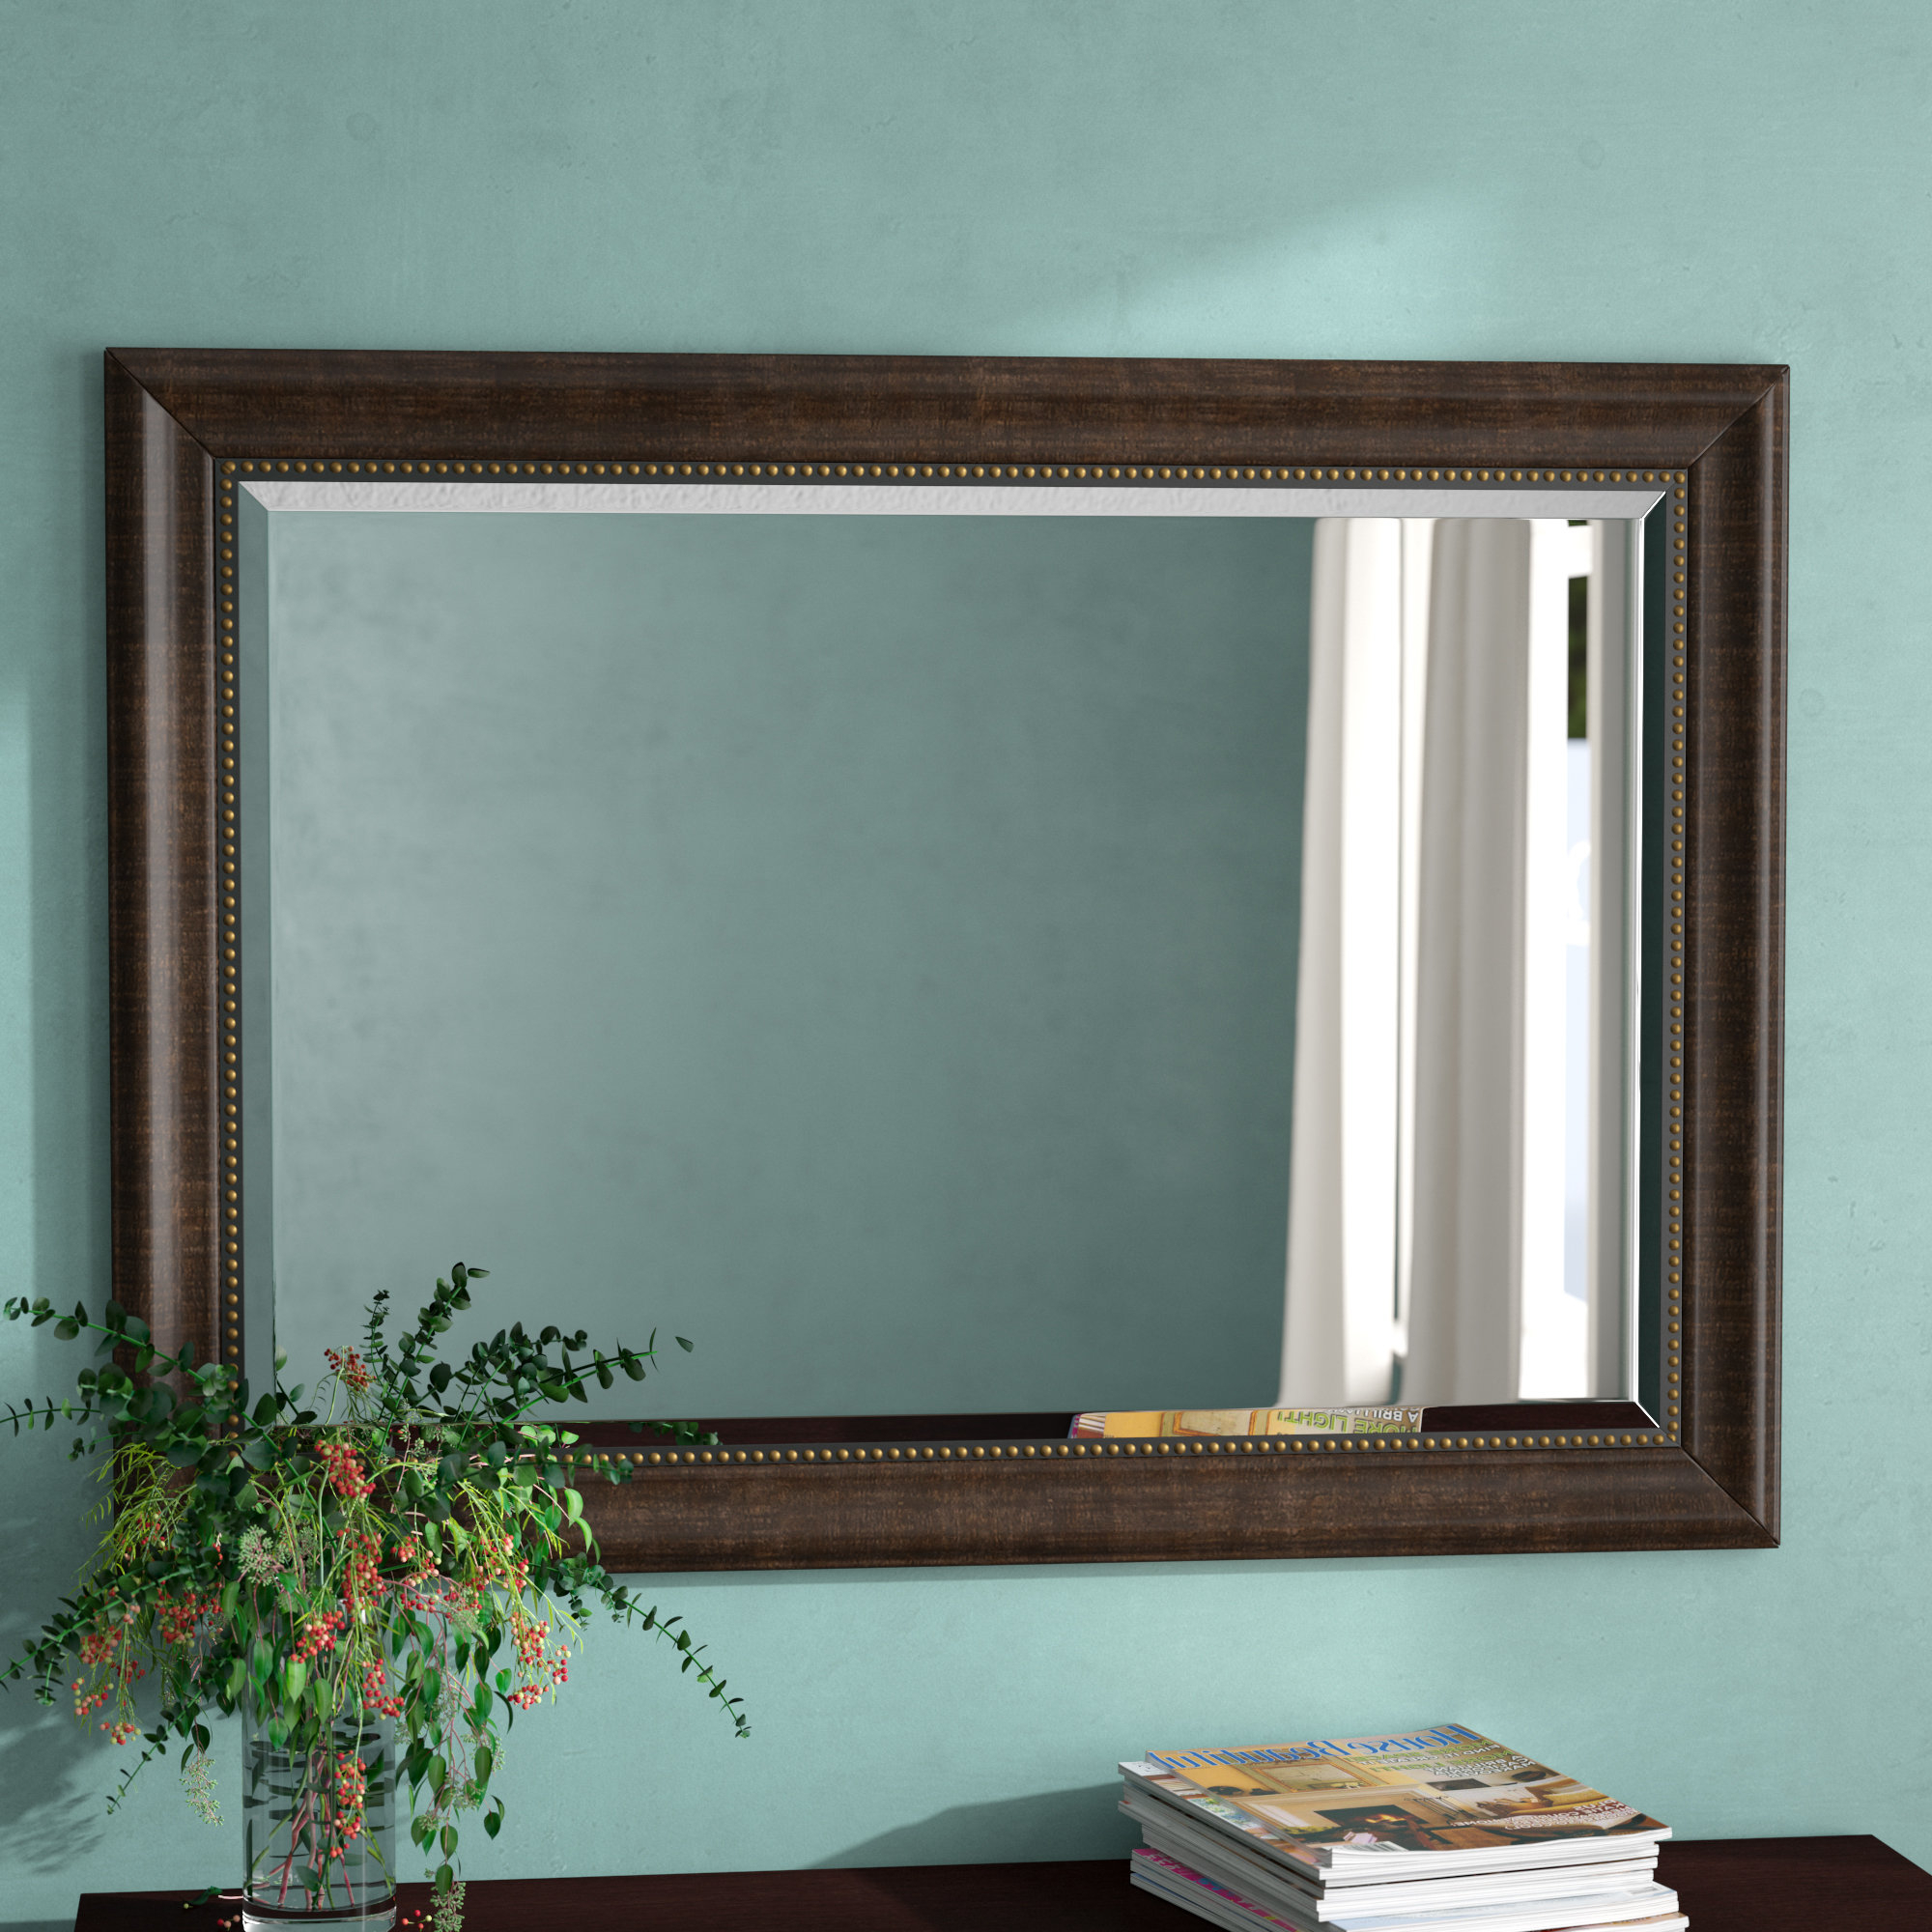 Beveled Wall Mirrors Throughout Most Recent Vassallo Beaded Bronze Beveled Wall Mirror (View 3 of 20)